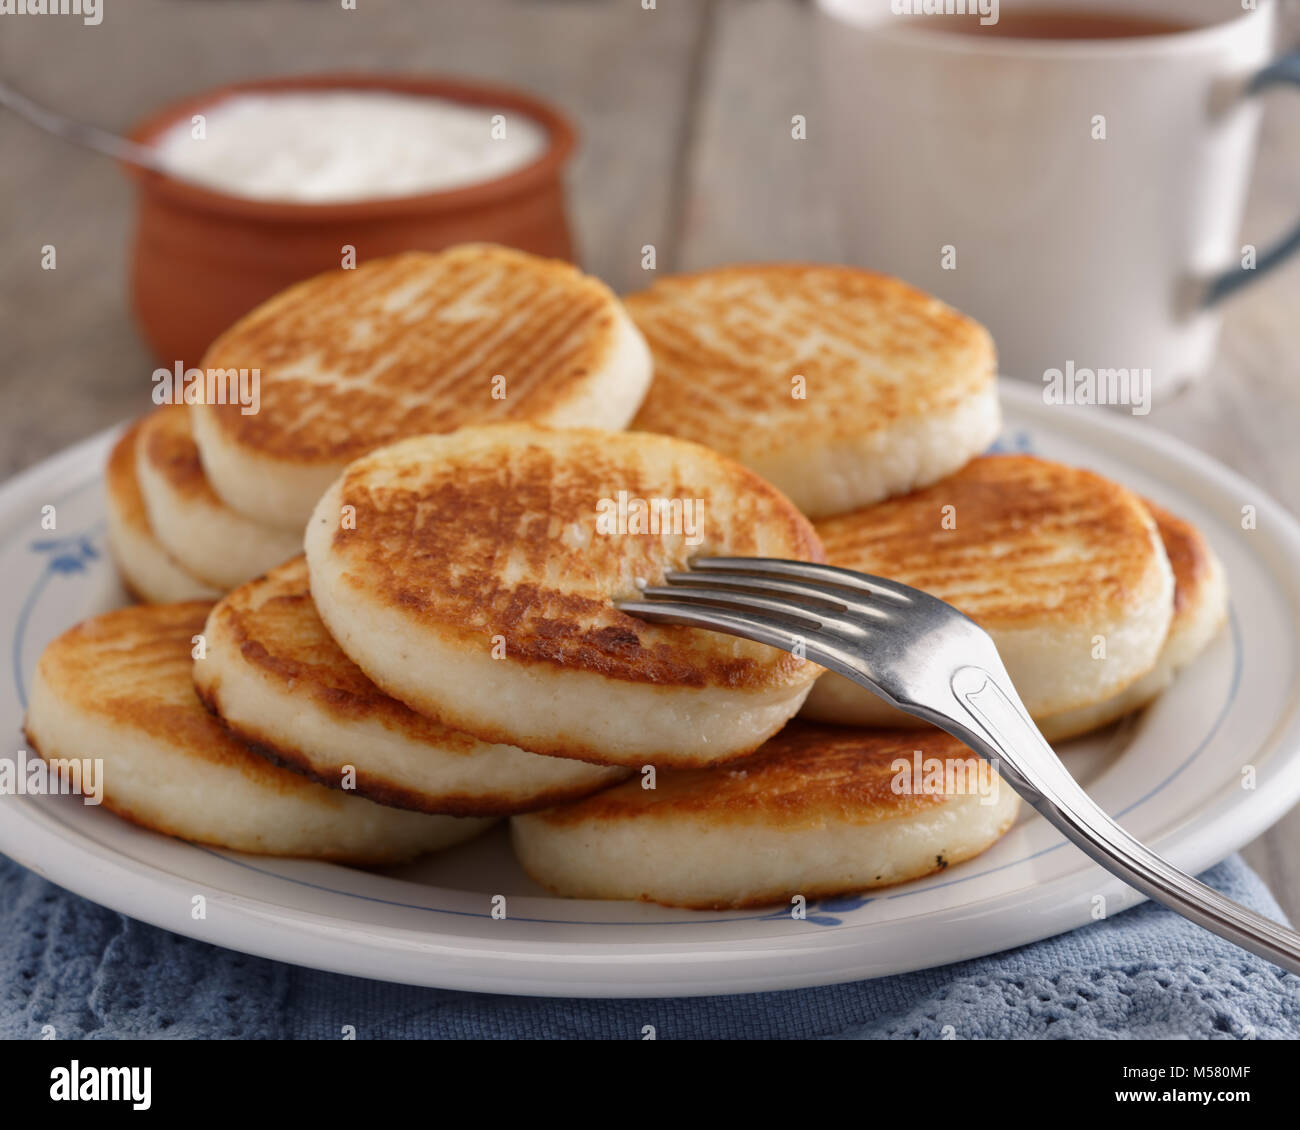 Syrniki, the traditional Russian cheese pancakes on a rustic table - Stock Image